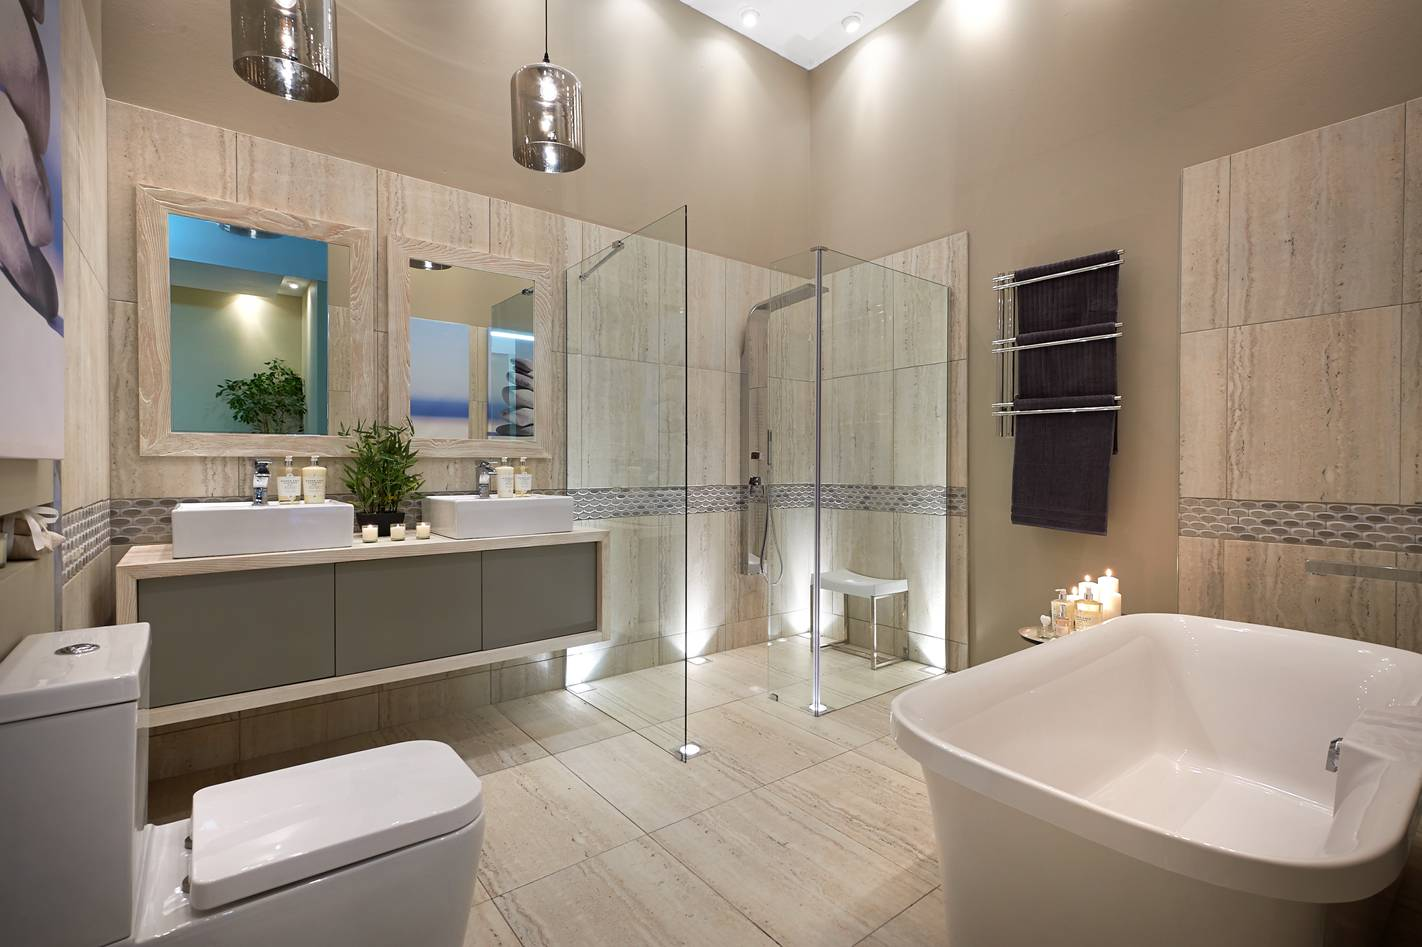 Top design tips for family bathrooms for Create a bathroom design online